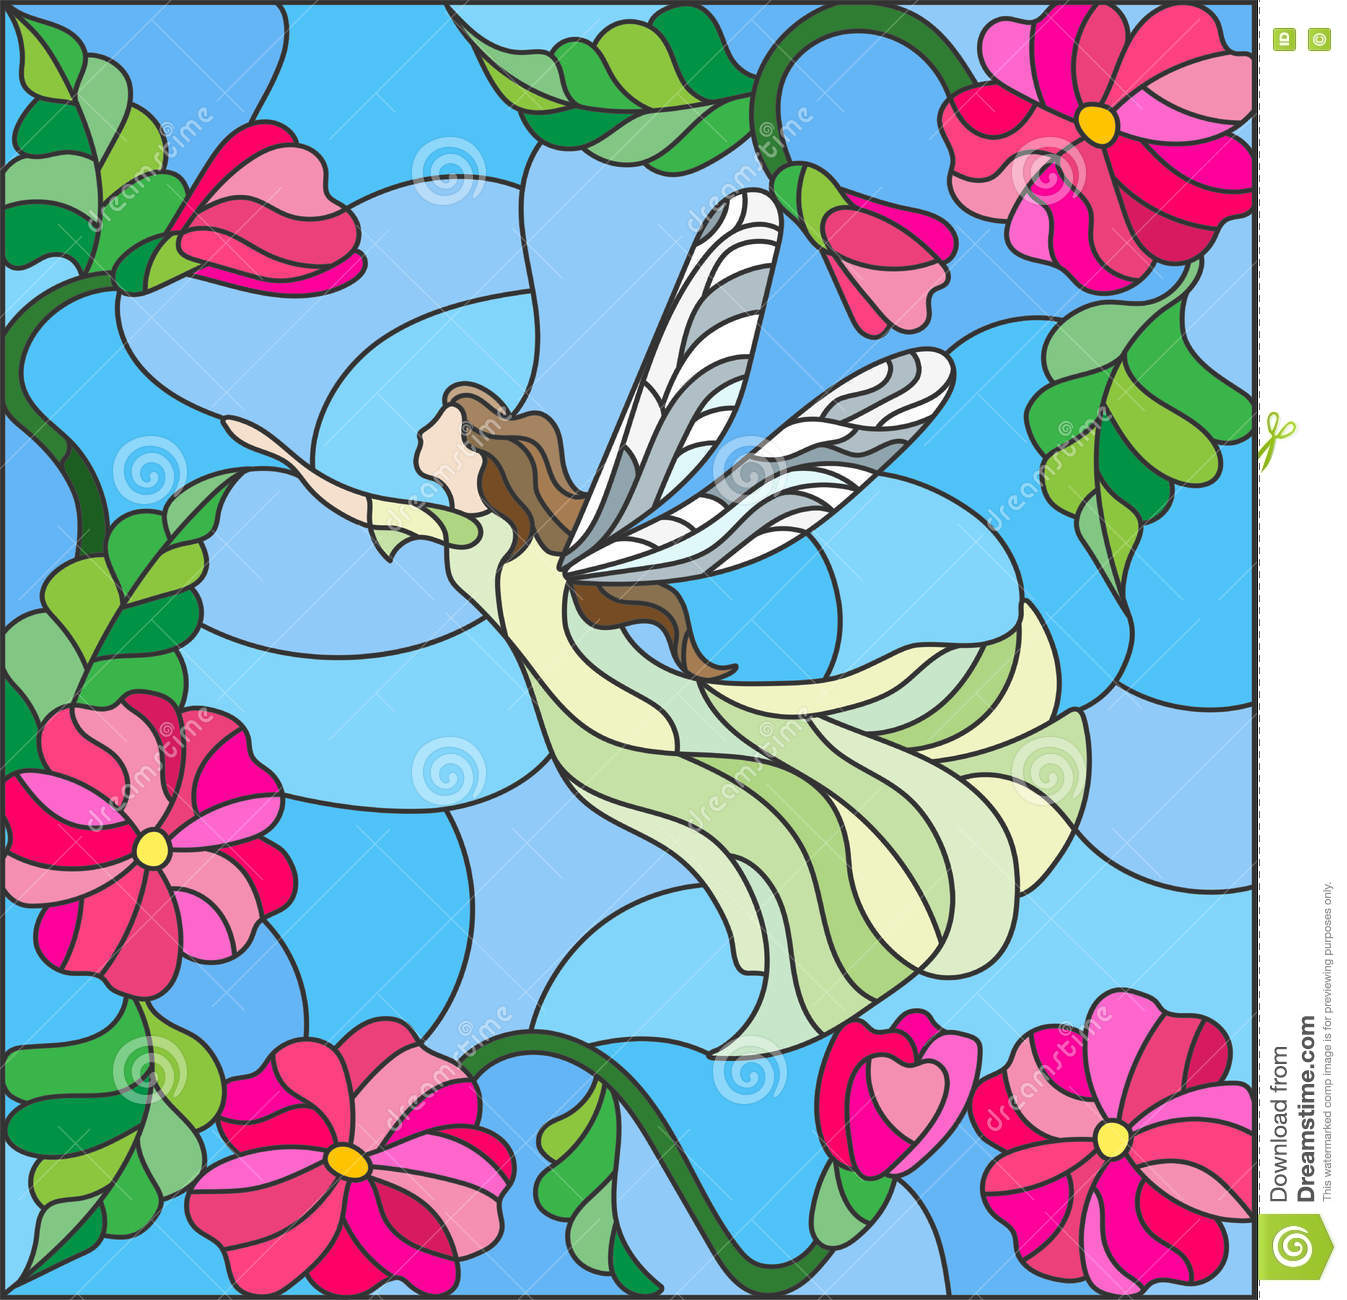 Stained Glass Illustration With A Winged Fairy In The Sky Flowers